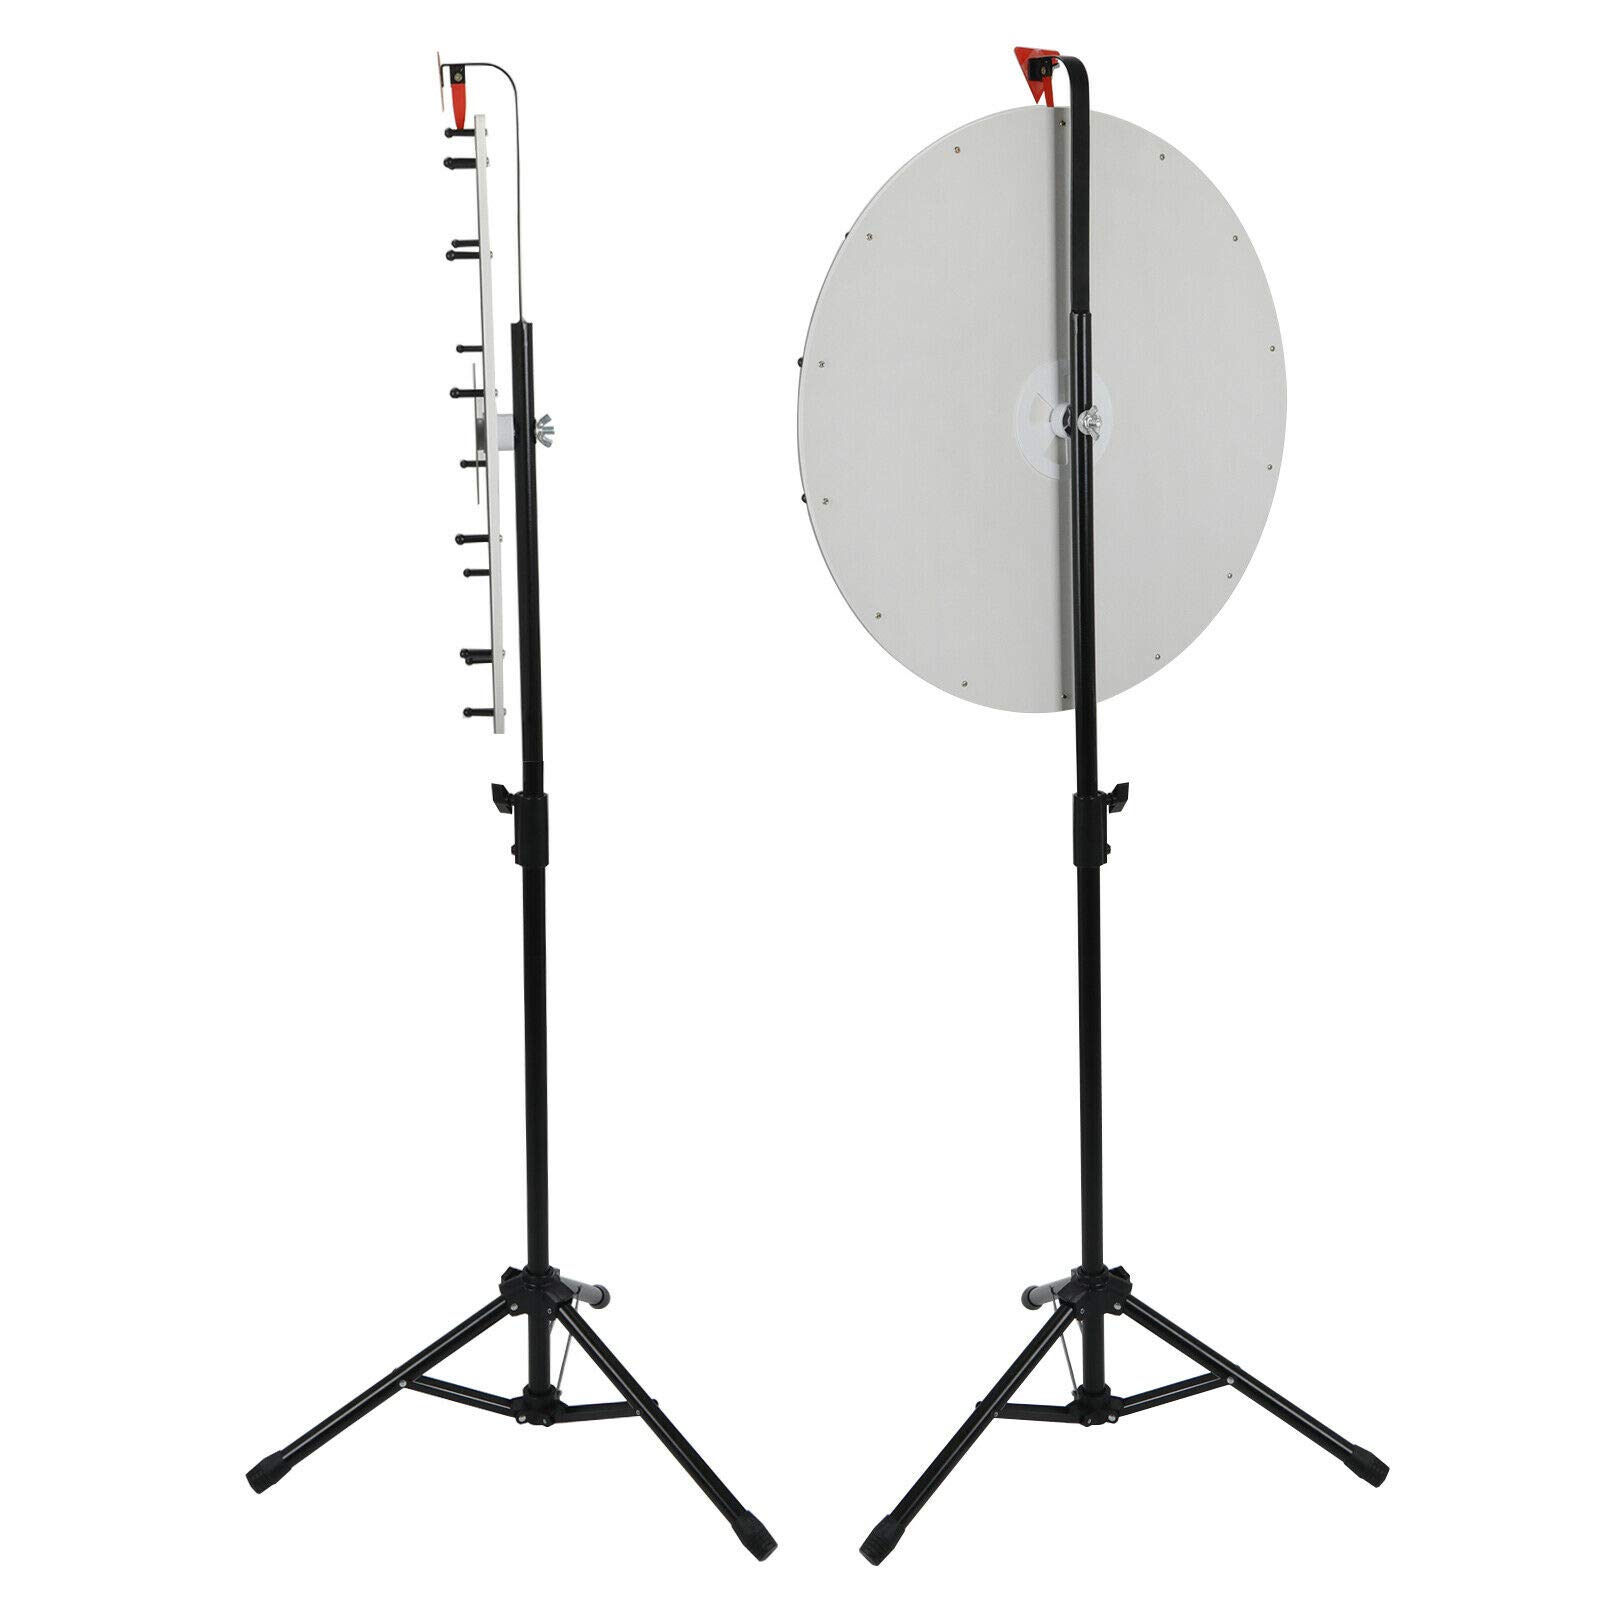 24'' Prize Wheel Metal Tripod Adjustable Floor Stand Editable Reusable Dry Erase Color Portable 14 Slot Perfect For Trade-shows Promotion Activities Carnivals Annual Meetings Holiday Activities Parties by Auténtico (Image #3)